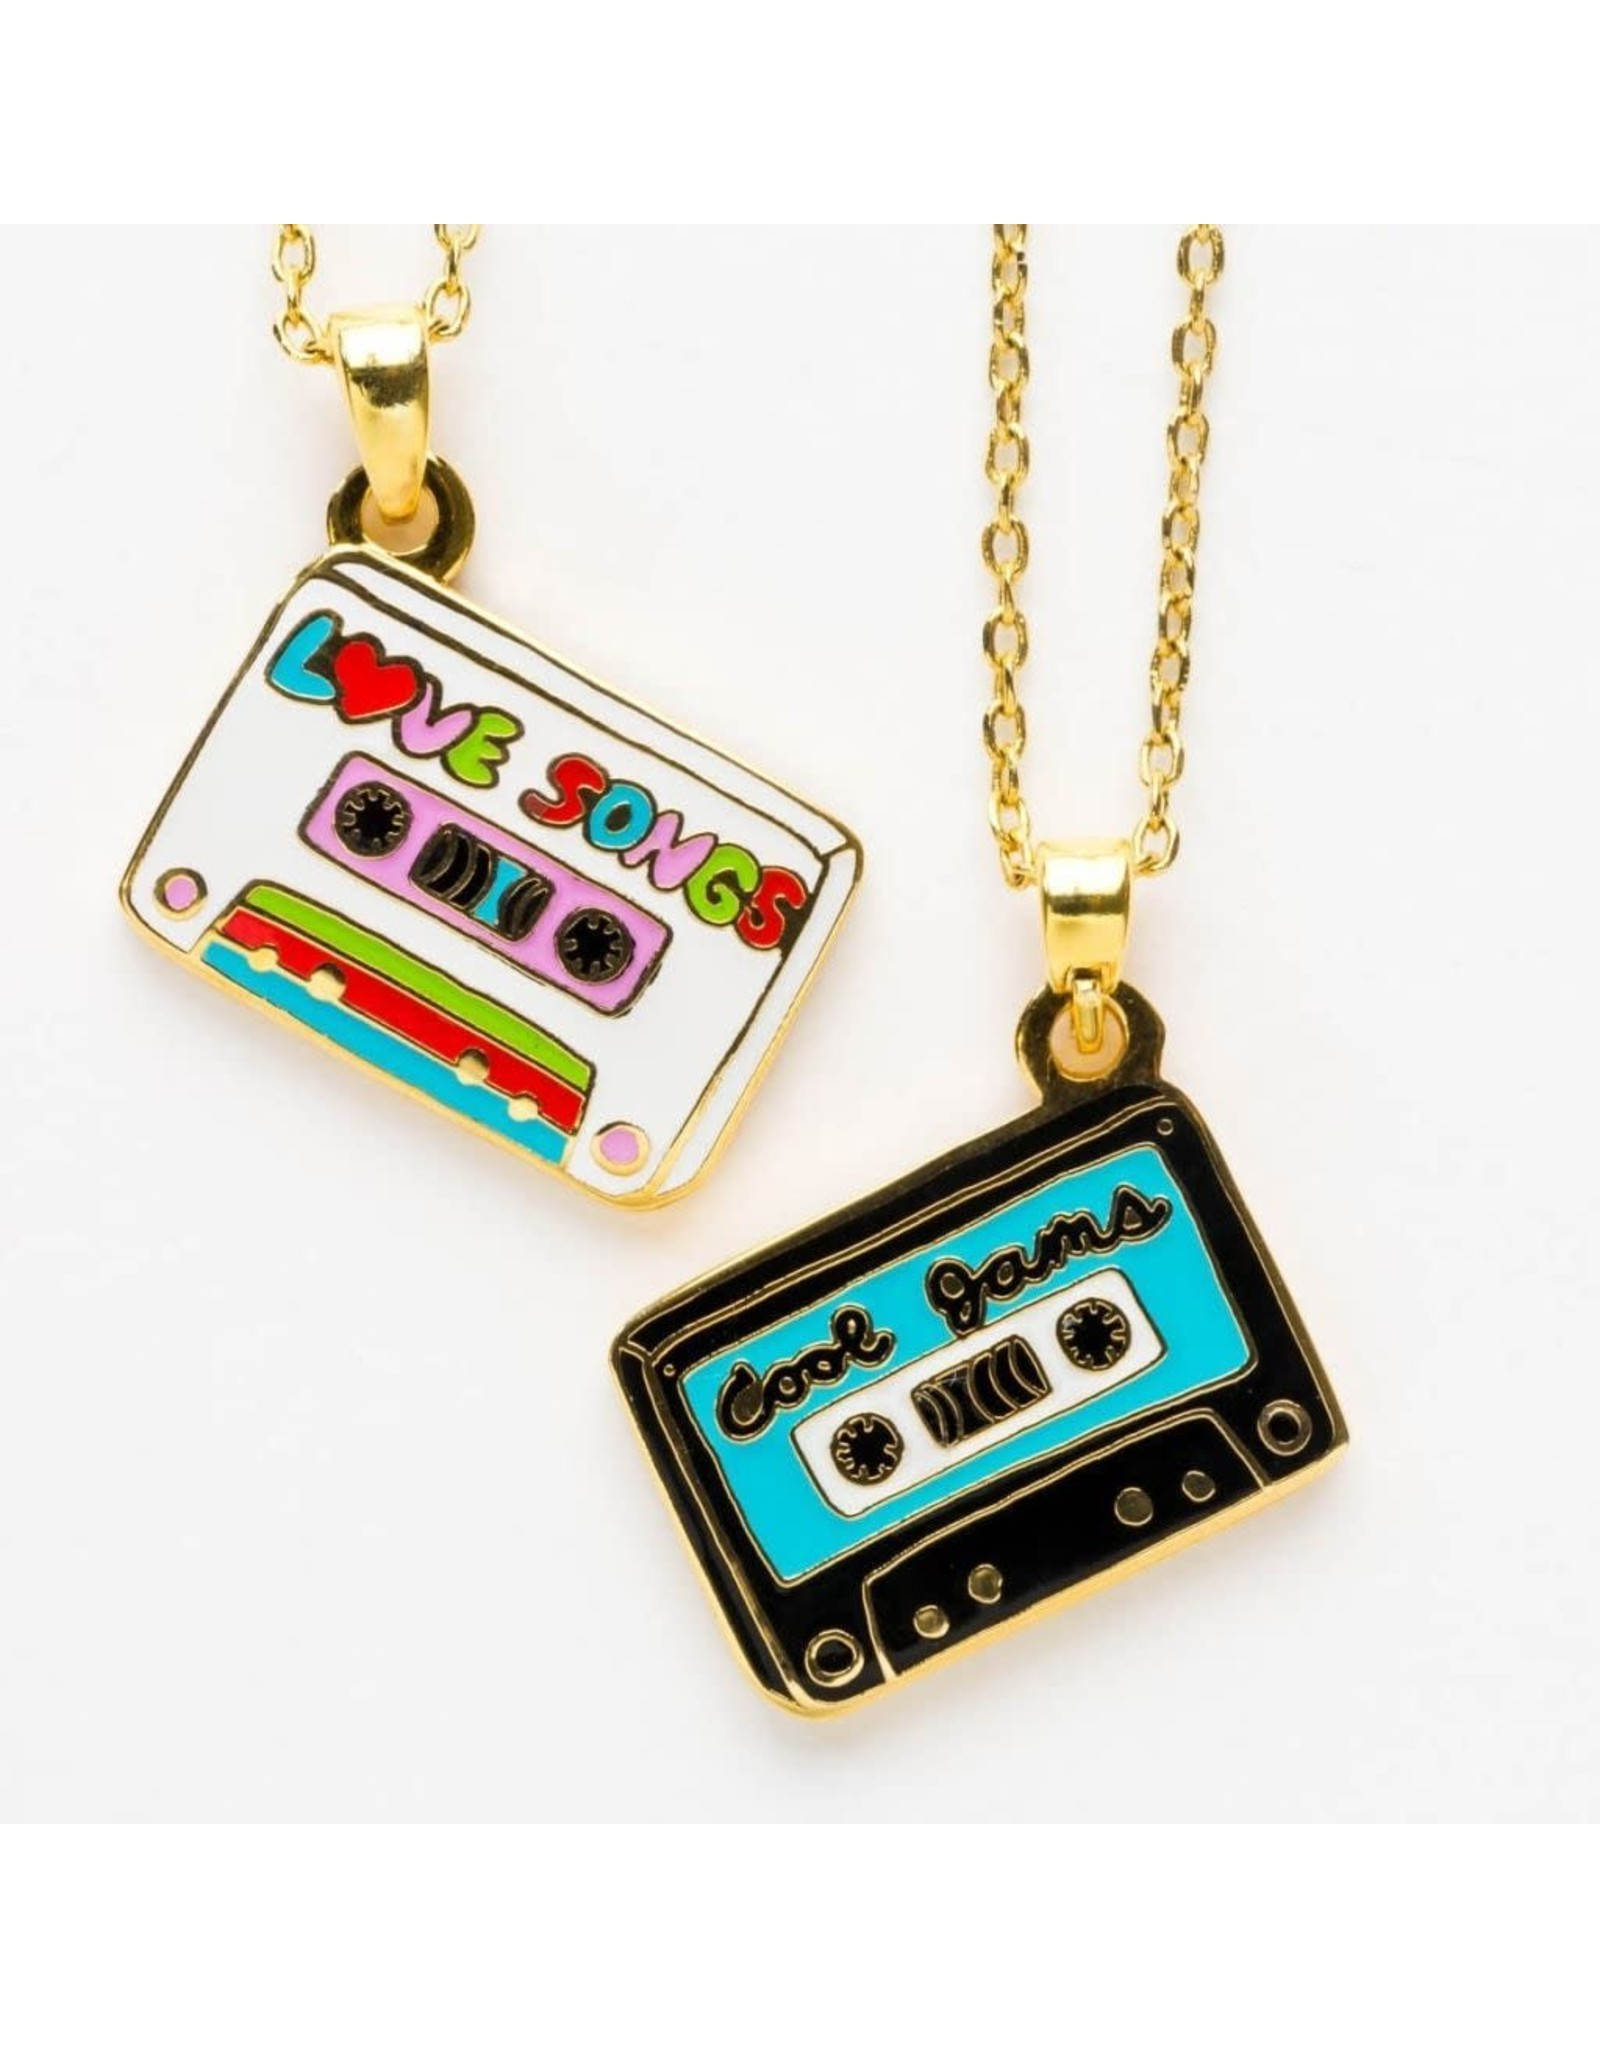 Cool Jams and Love Songs Double-Sided Pendant Necklace